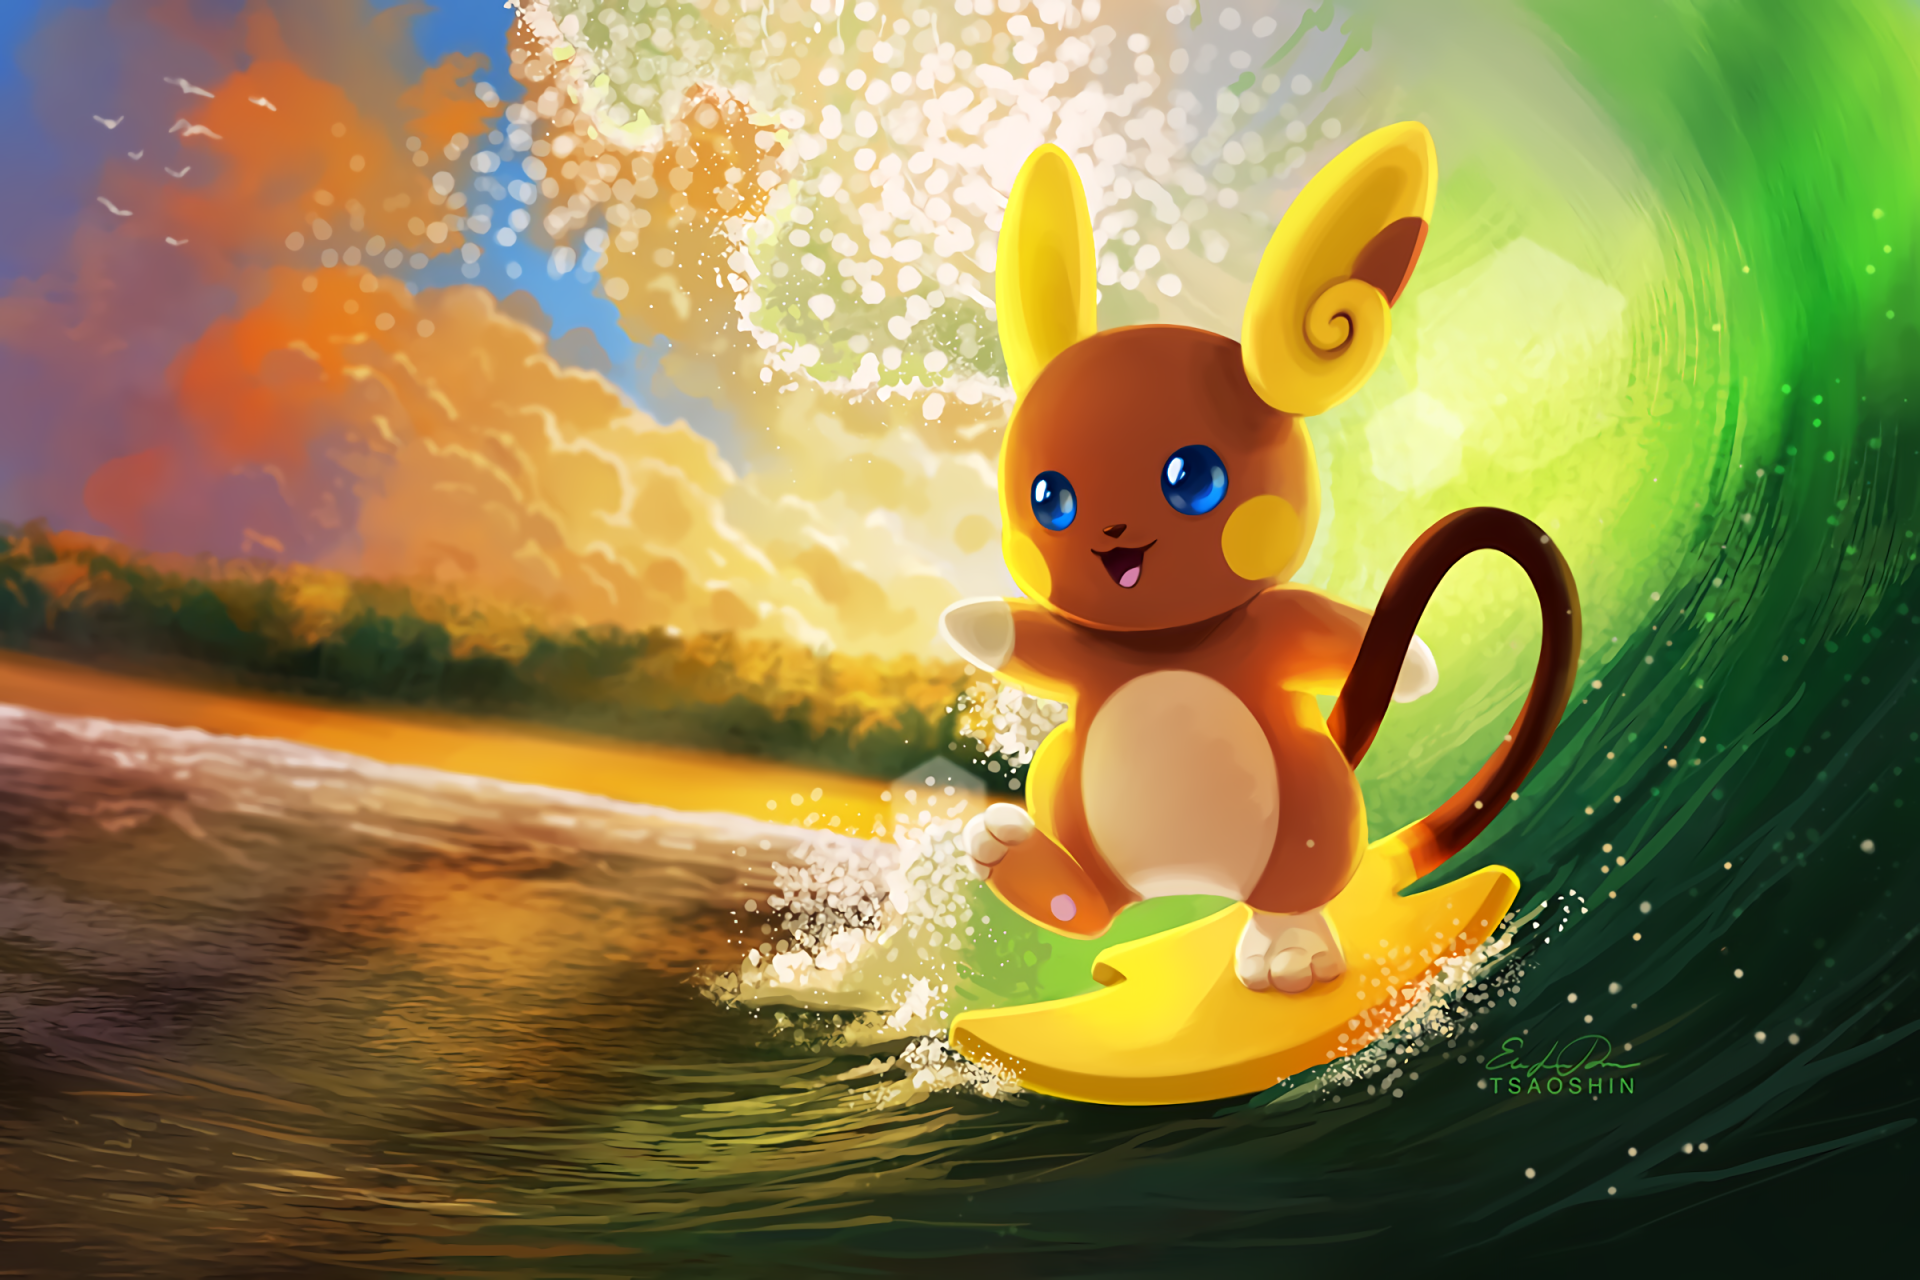 Video Game - Pokémon Sun and Moon  Raichu (Pokémon) Alolan Raichu Pokémon Wallpaper